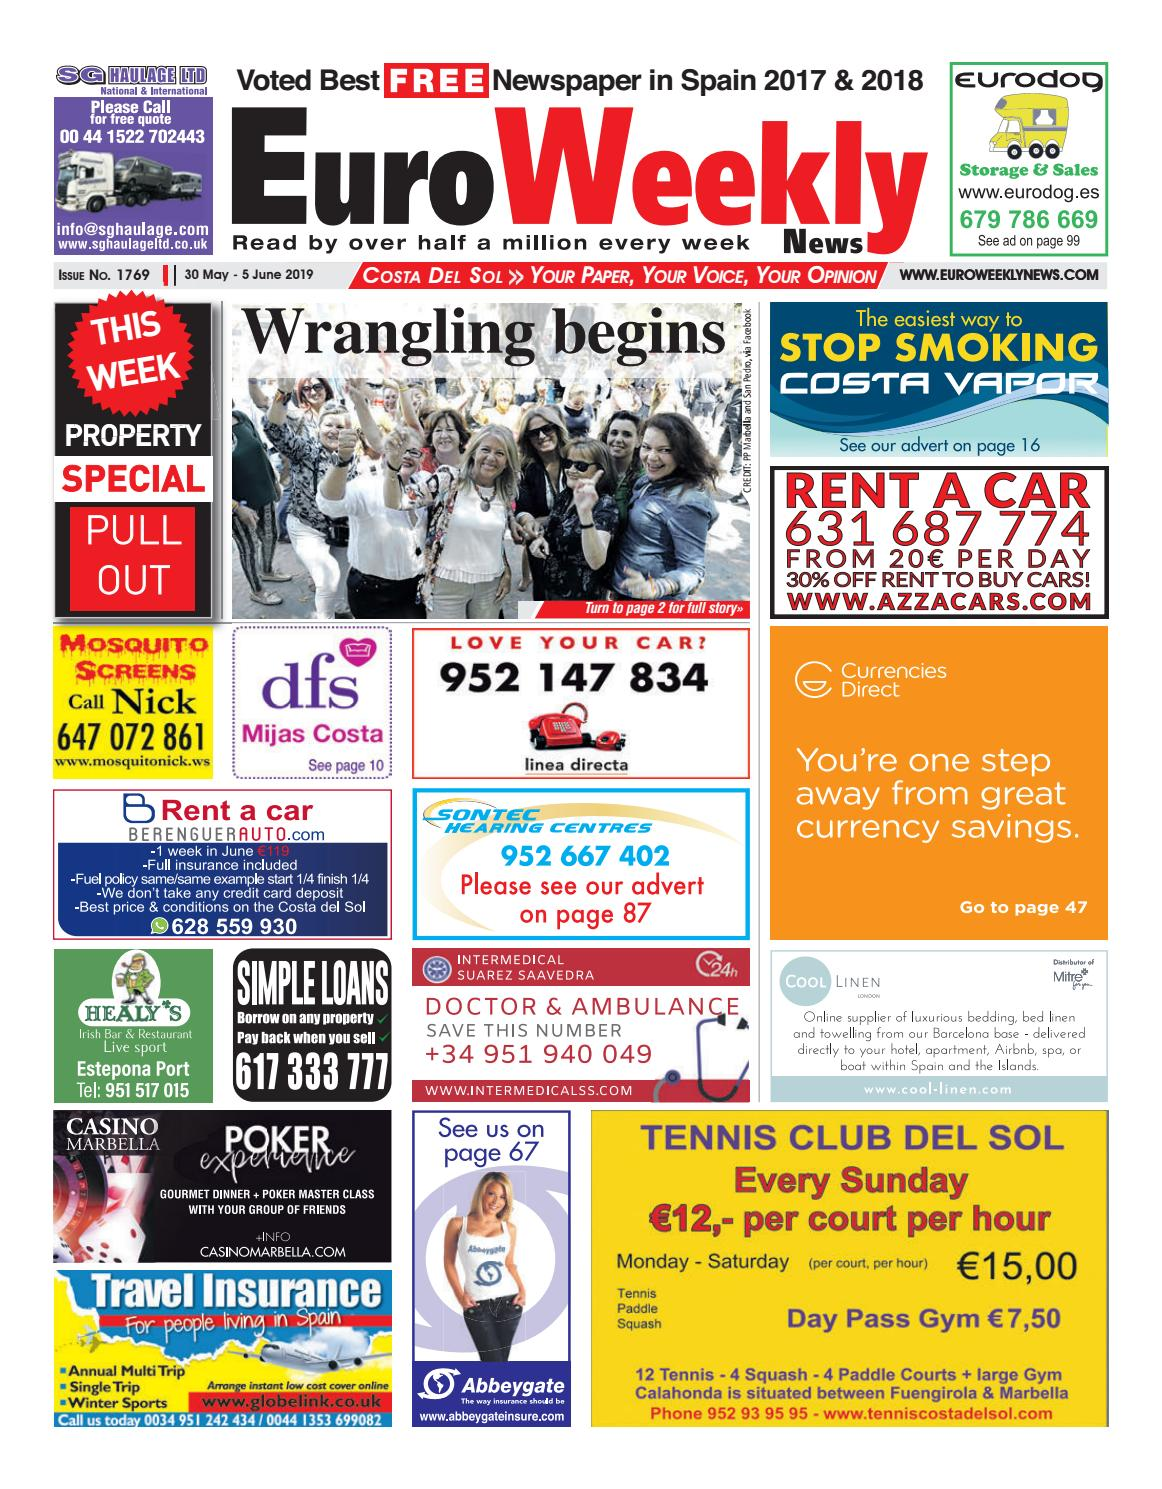 061a756d8bb Euro Weekly News - Costa del Sol 30 May - 5 June 2019 Issue 1769 by Euro  Weekly News Media S.A. - issuu